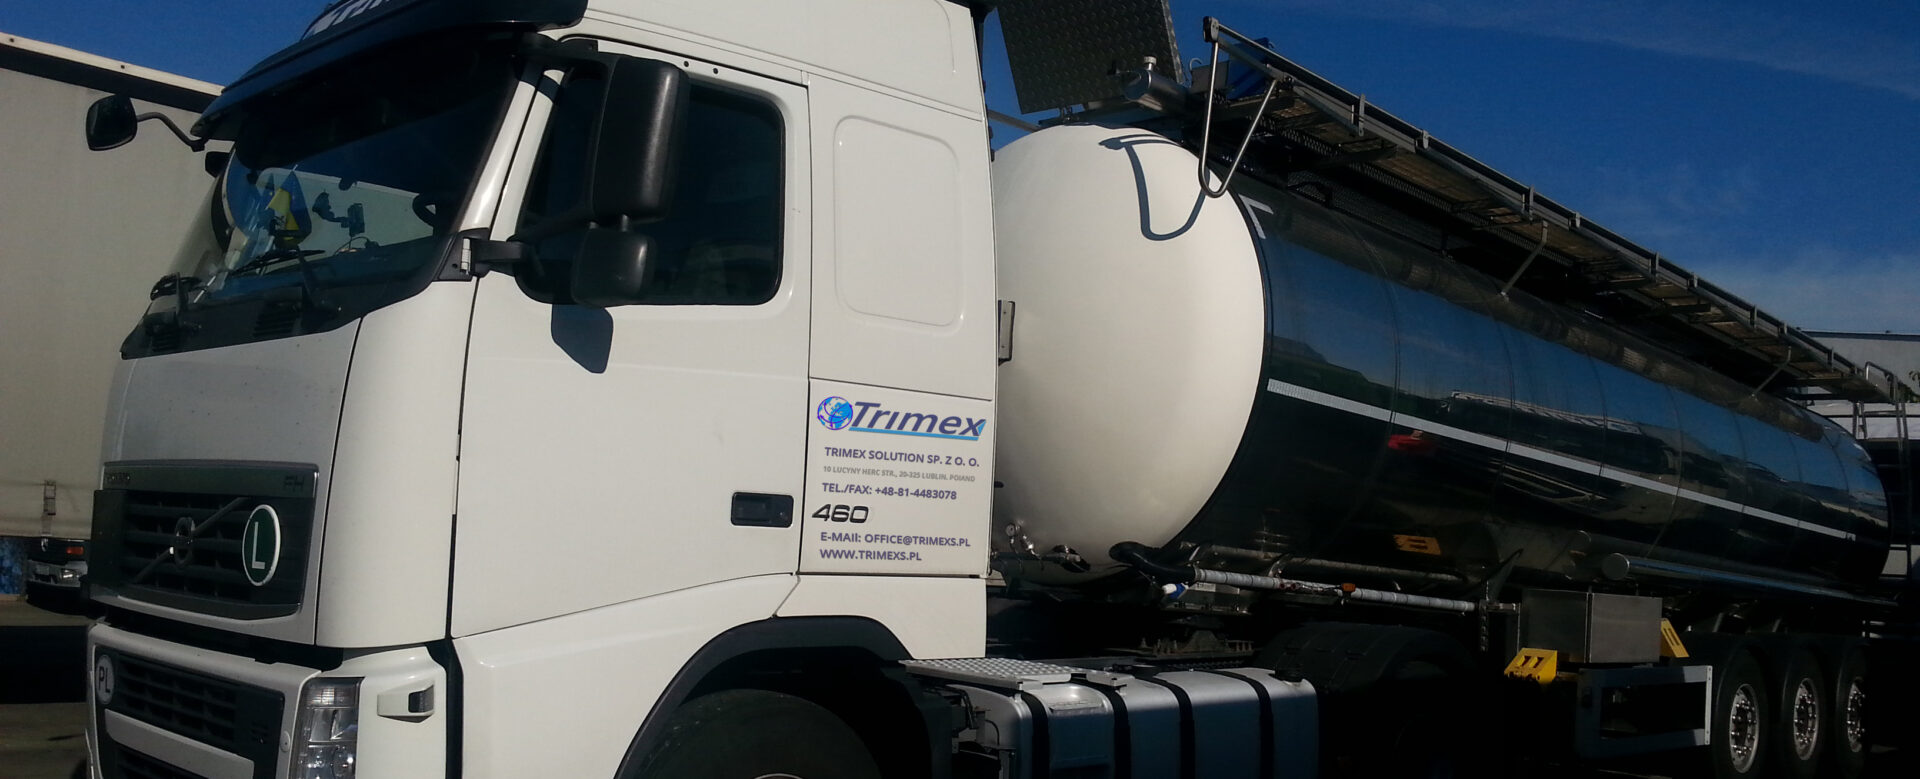 Trimex solution